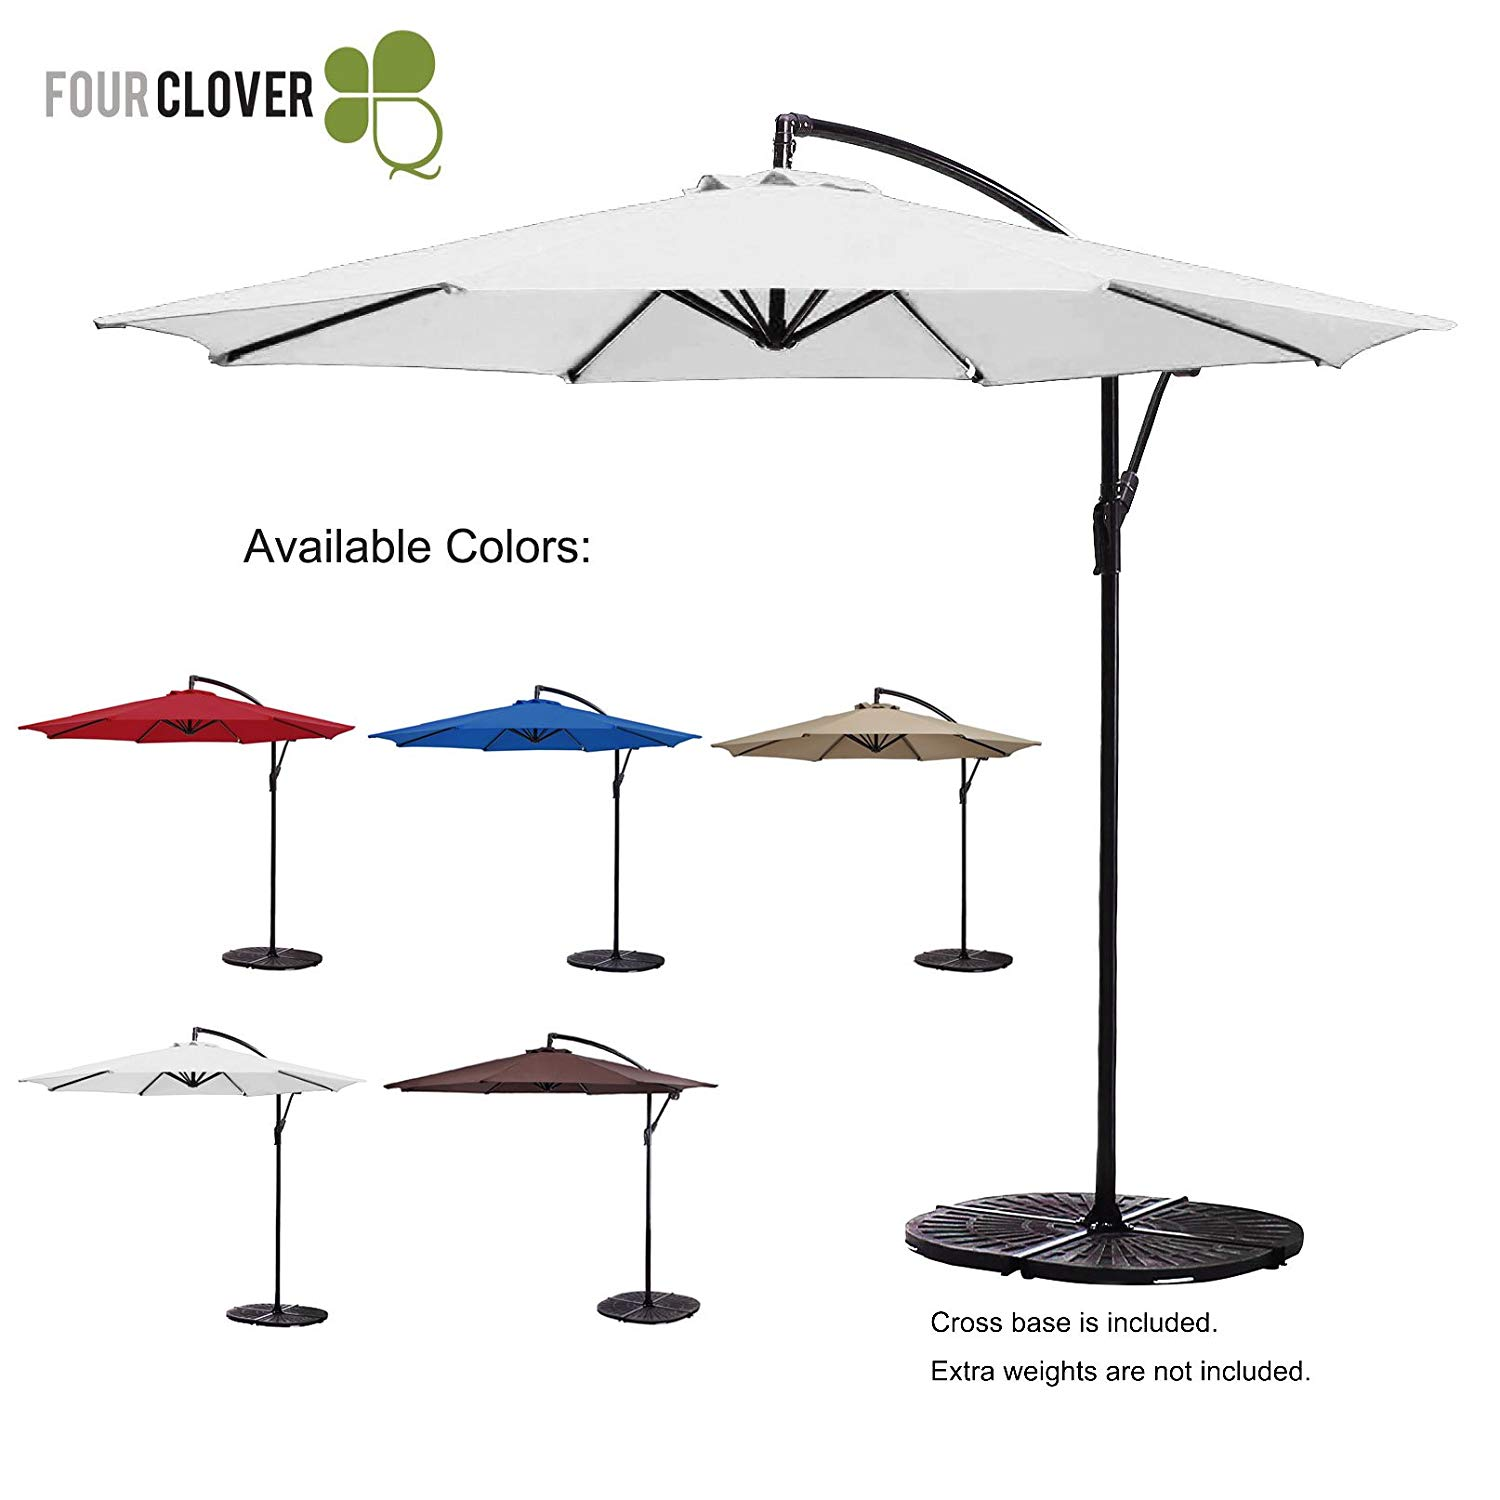 FOUR CLOVER 10 Ft Patio Umbrella Offset Hanging Umbrella Outdoor Market Umbrella Garden Umbrella, 250g/sqm Polyester, with Cross Base and Crank (White)